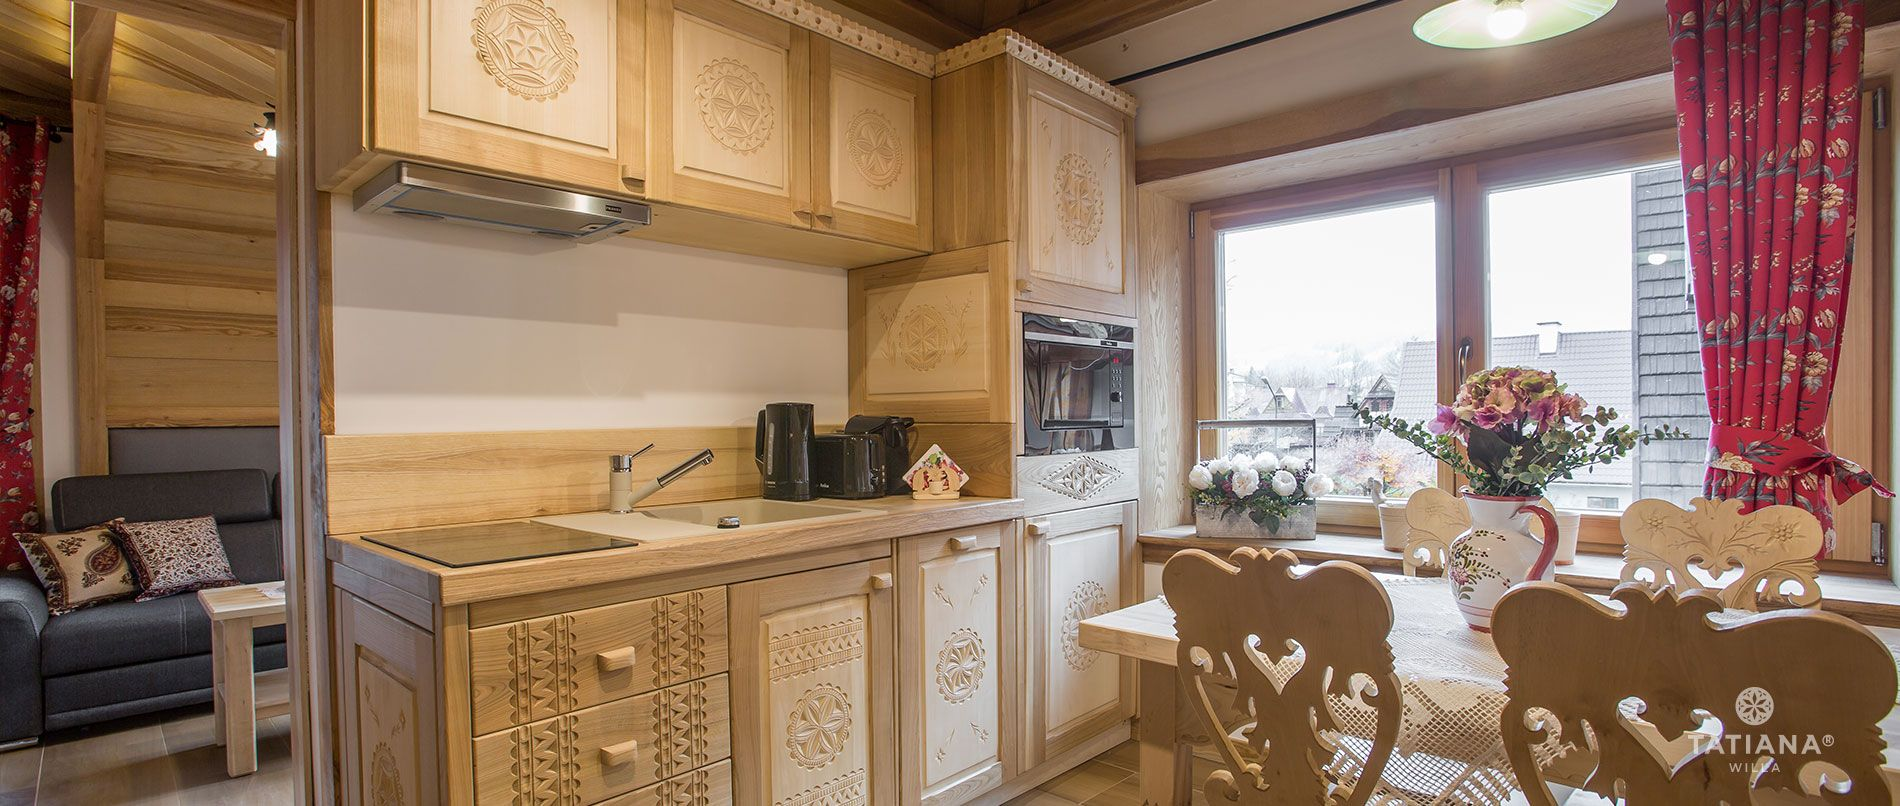 Tatra Apartment - Kitchen with dining room